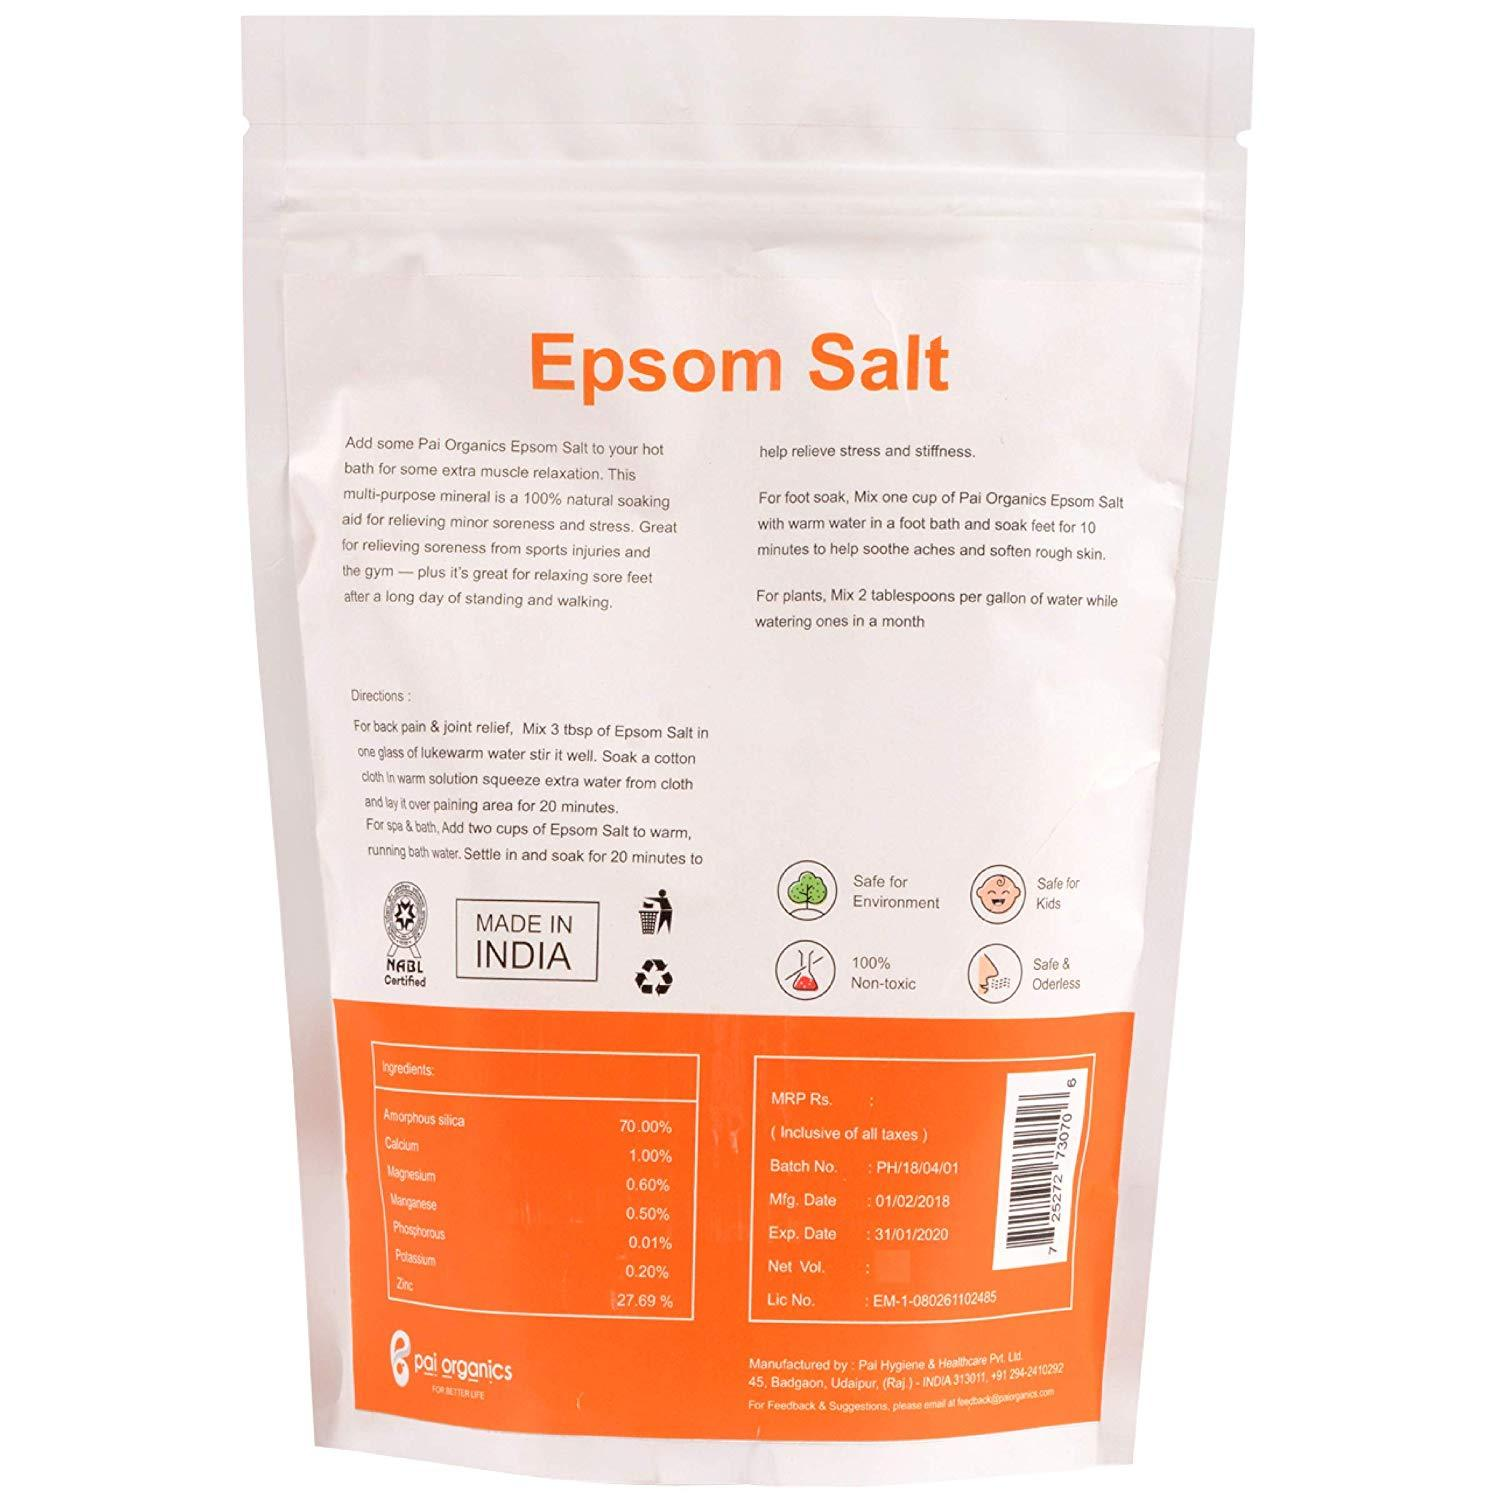 Organic - Organic Epsom Salt (Magnesium Sulphate) For Bath, Salt Suitable For Aches, Pain And Muscles Relief, 900g